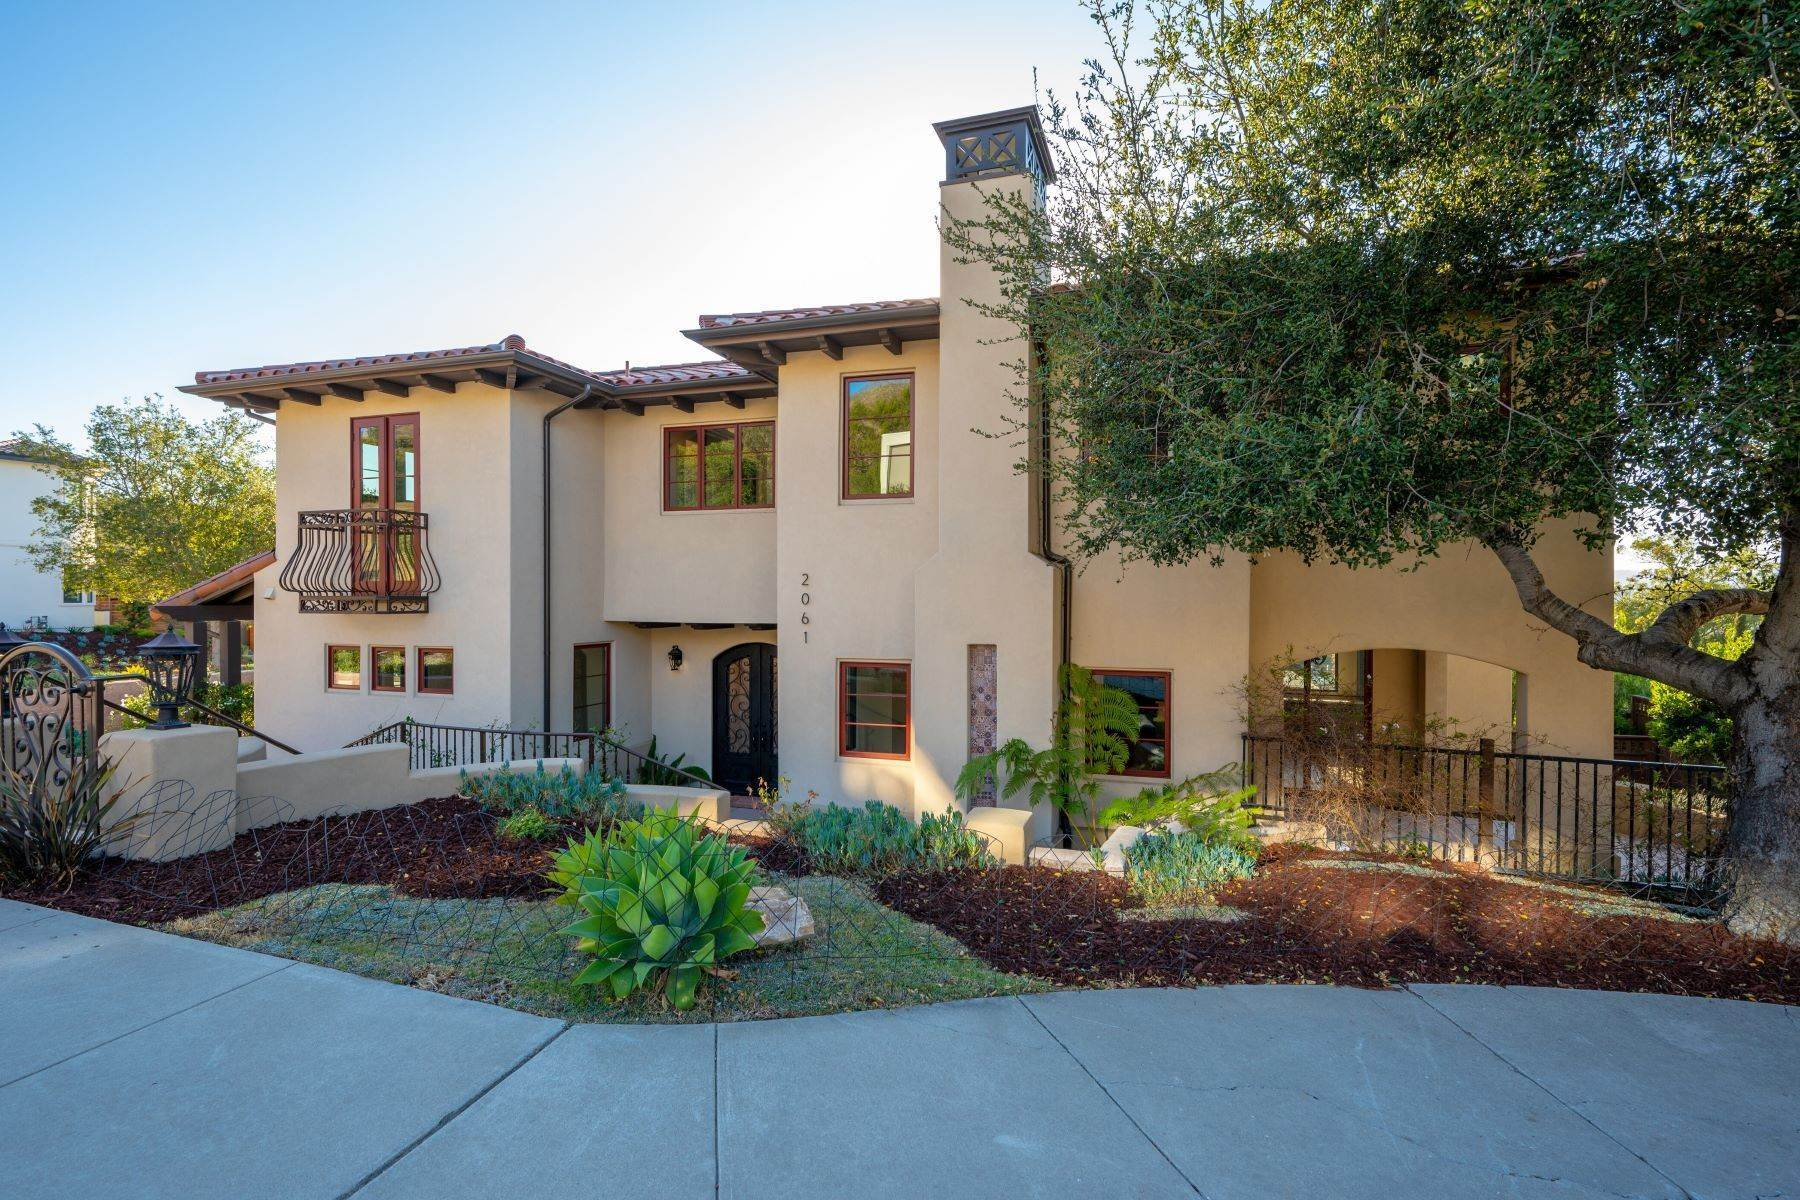 Single Family Homes for Sale at Stunning Spanish-Style Home 2061 Fixlini Street San Luis Obispo, California 93401 United States